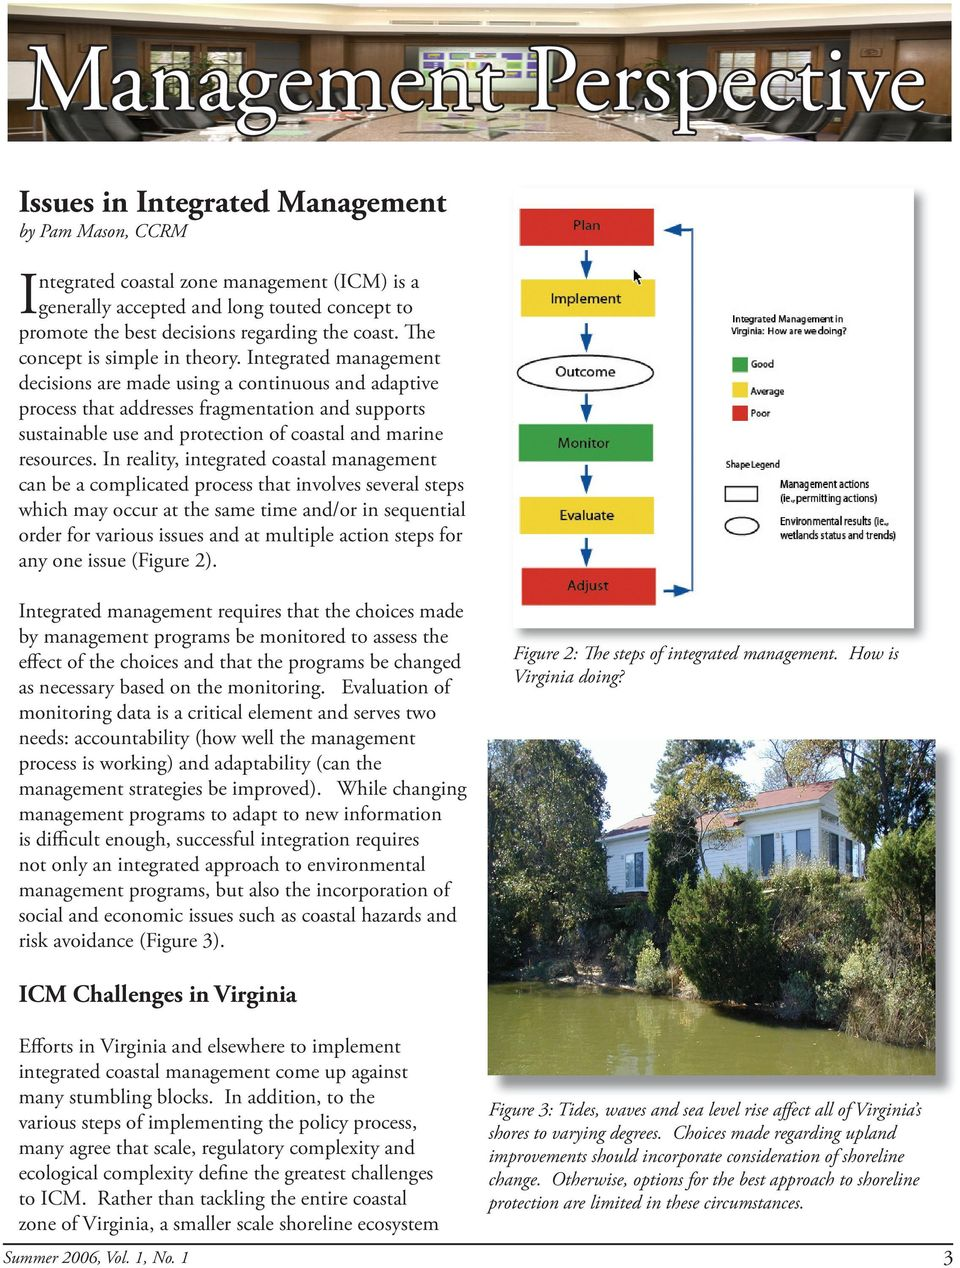 Integrated management decisions are made using a continuous and adaptive process that addresses fragmentation and supports sustainable use and protection of coastal and marine resources.